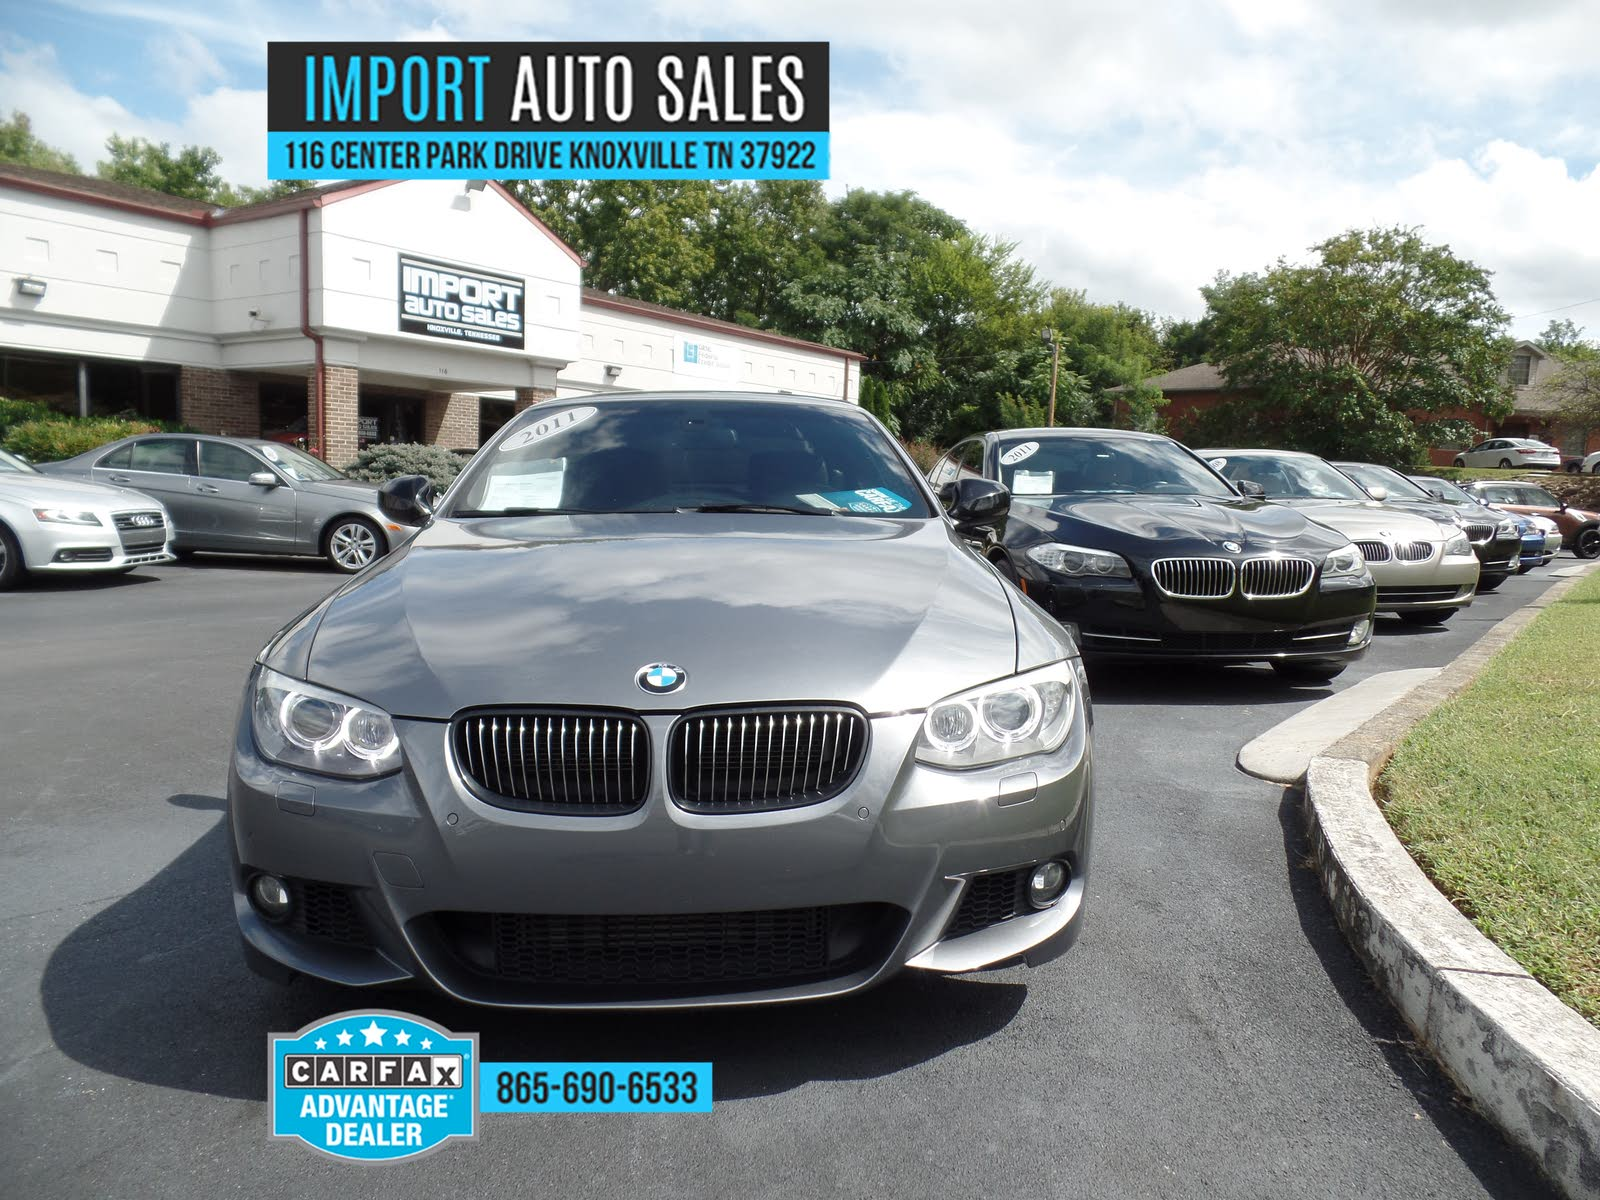 Cars For Sale Knoxville Tn >> Import Auto Sales Of Knoxville Knoxville Tn Read Consumer